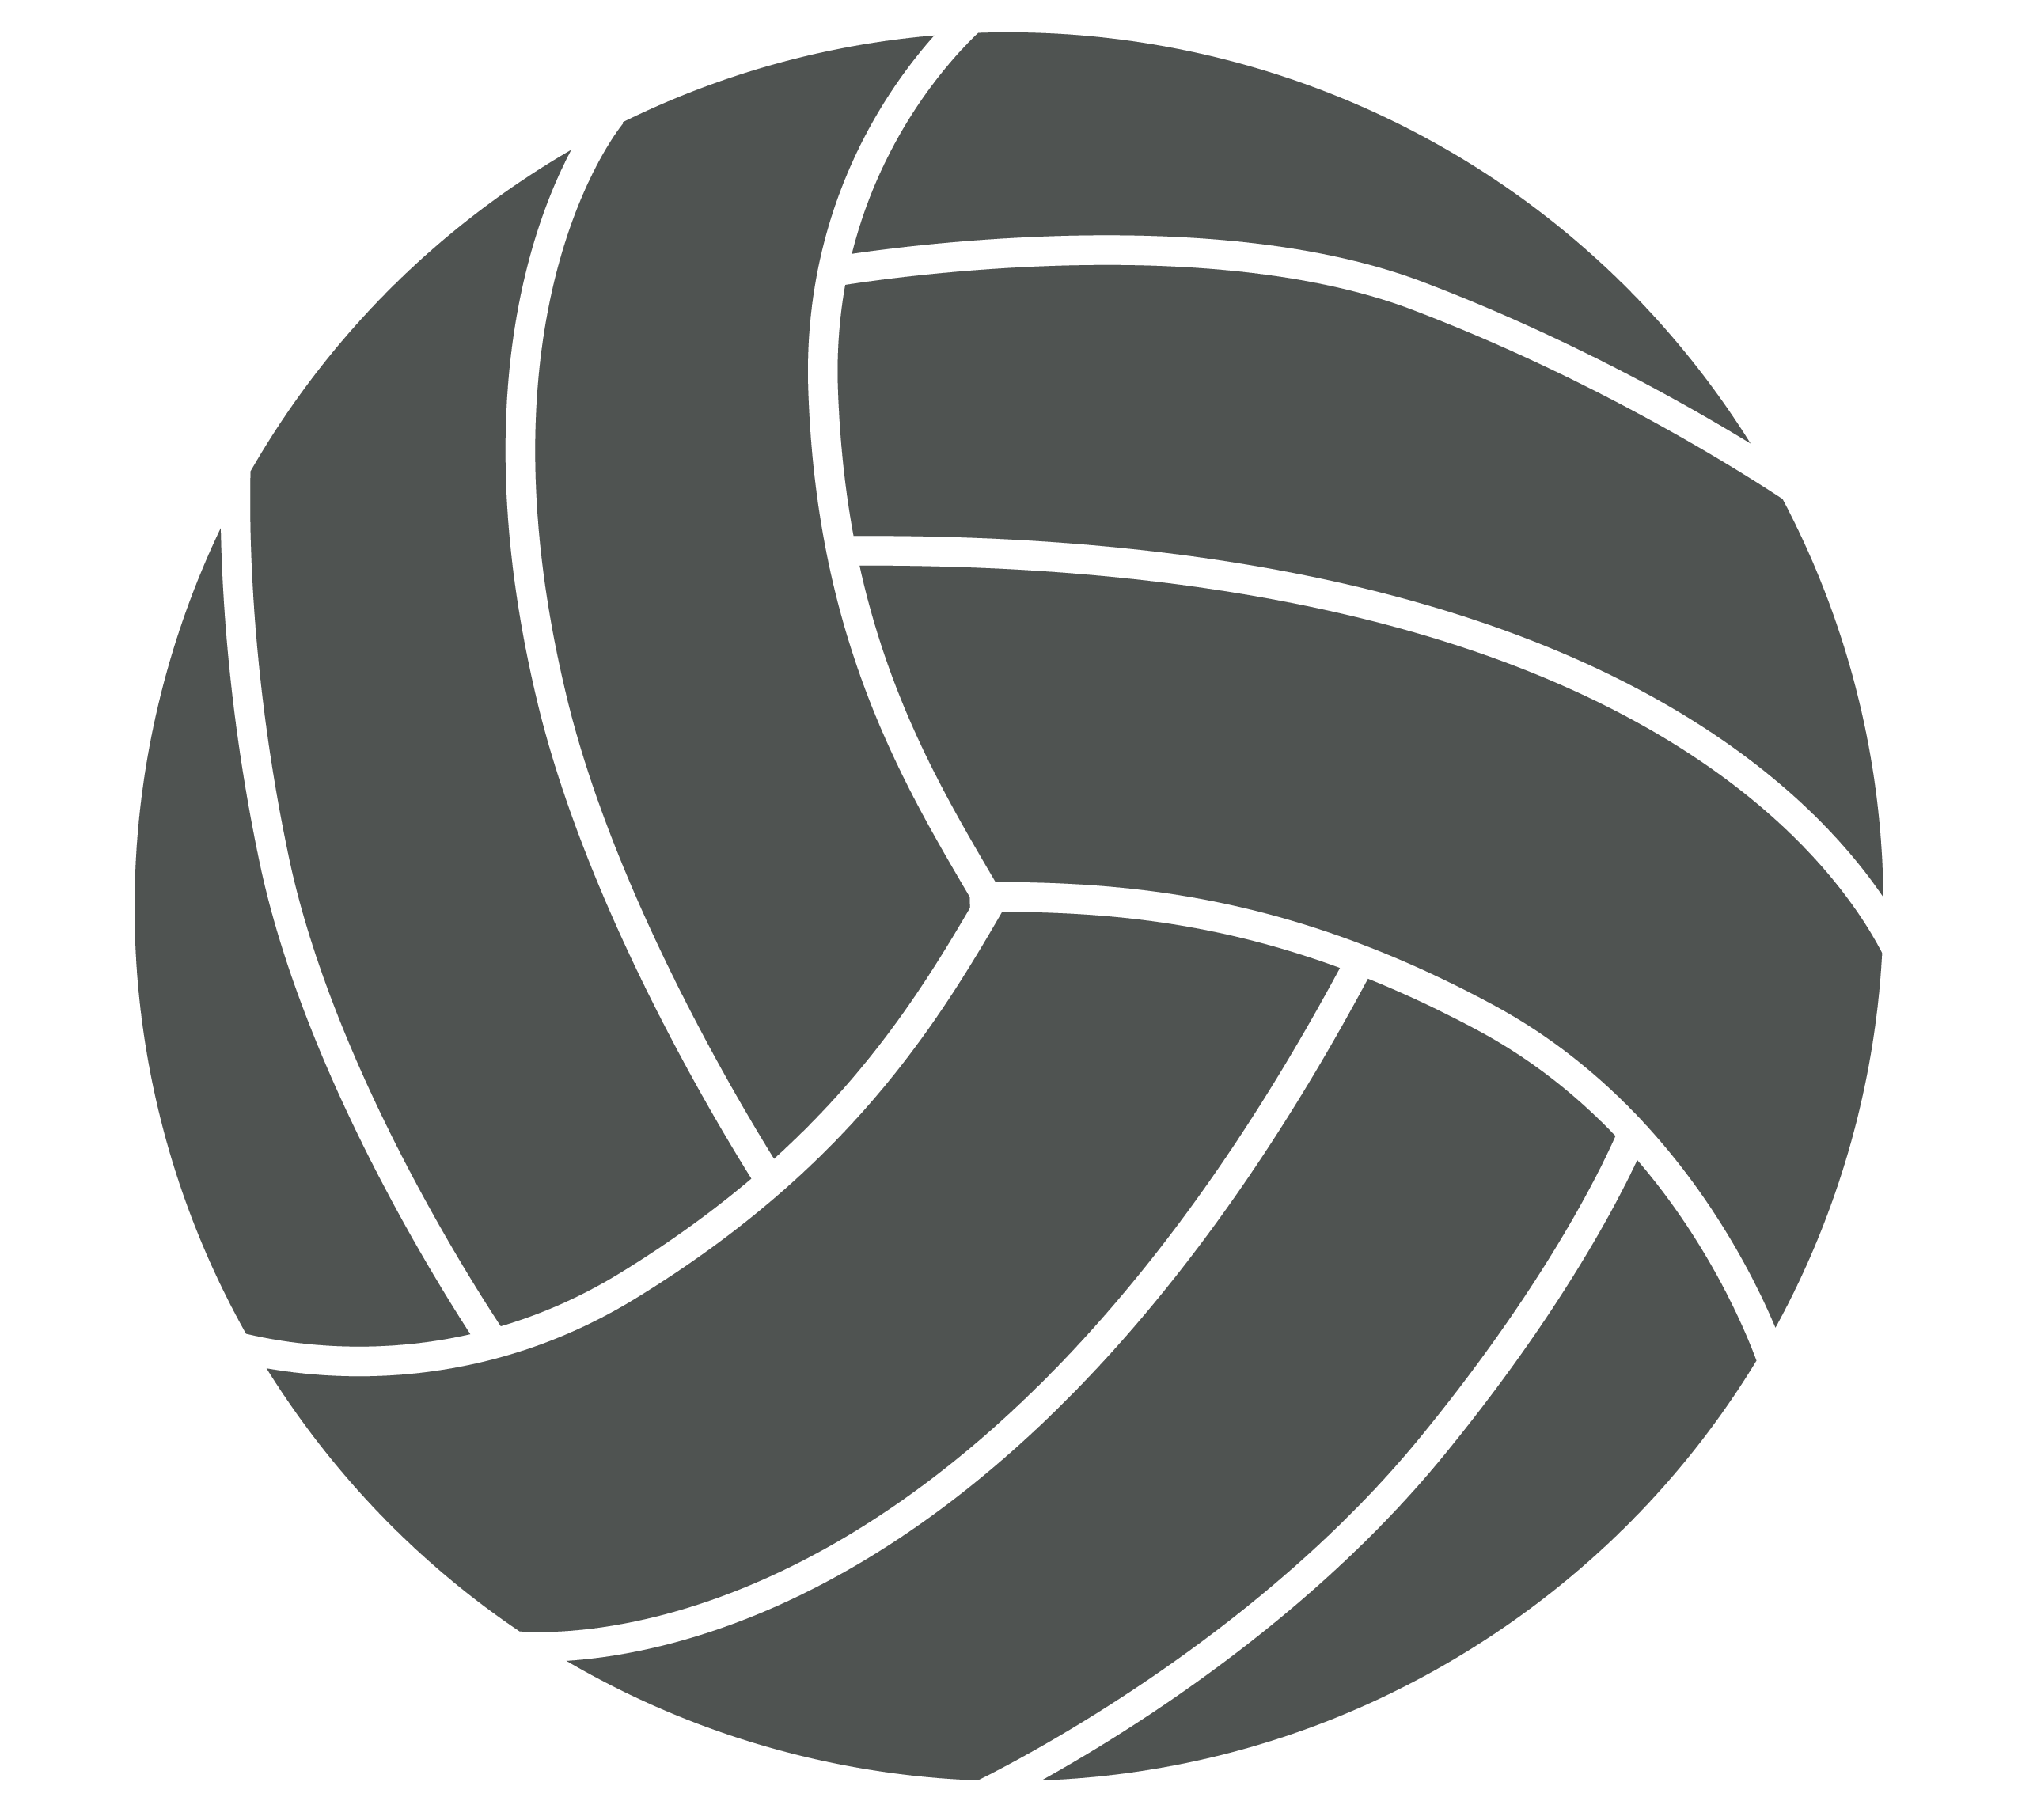 Free images group png. Clipart volleyball paint splatter